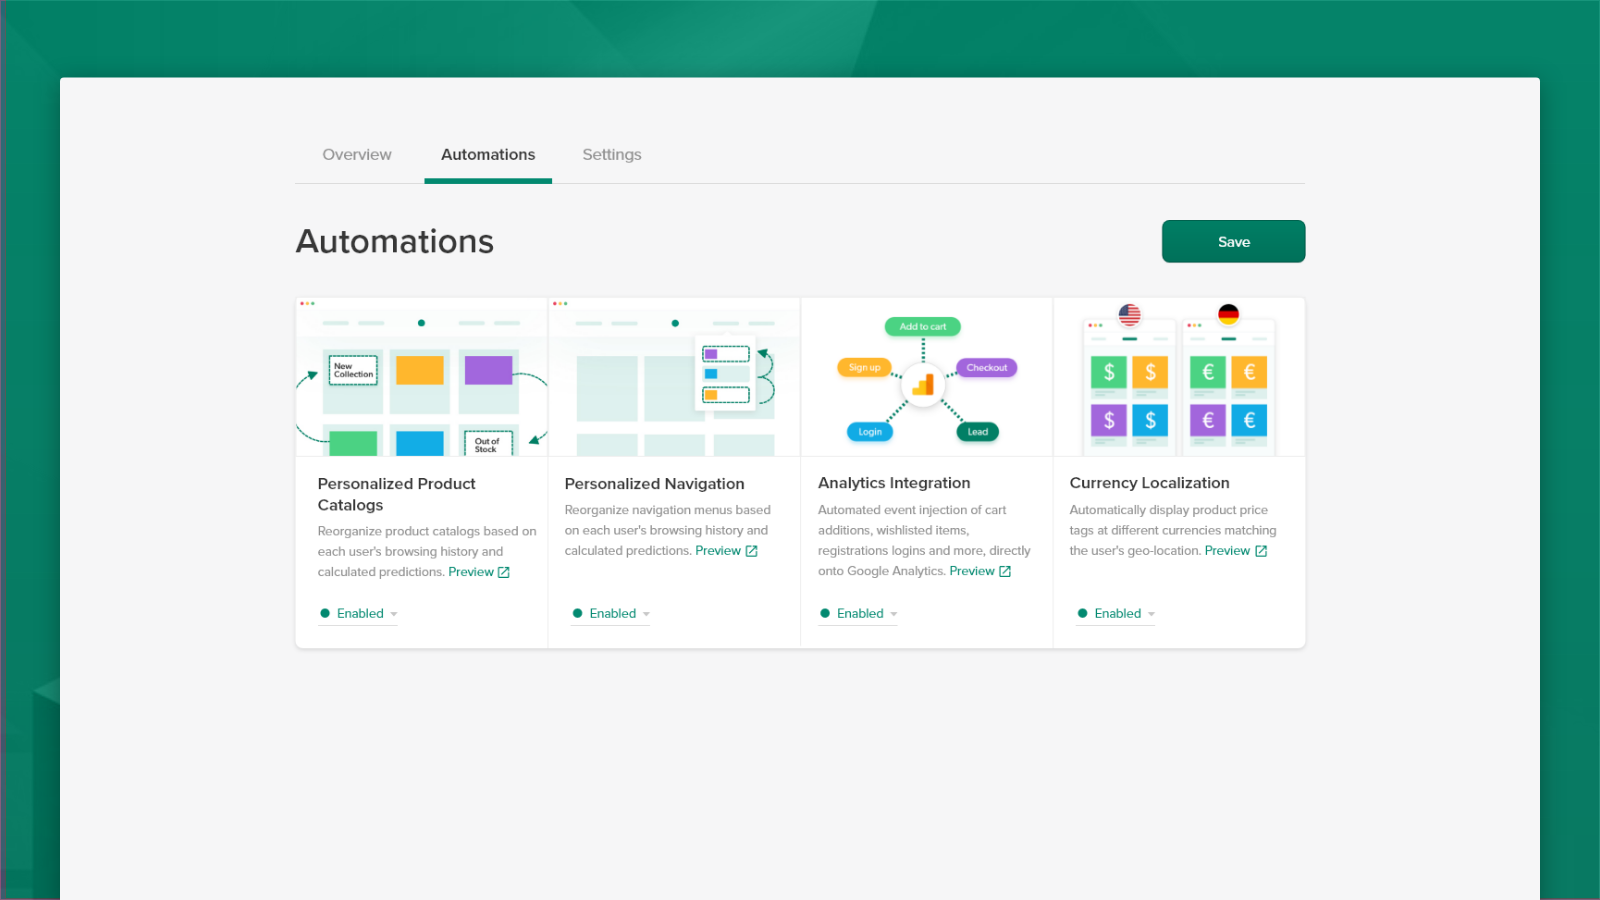 Enable twik and personalization automations in your shop.